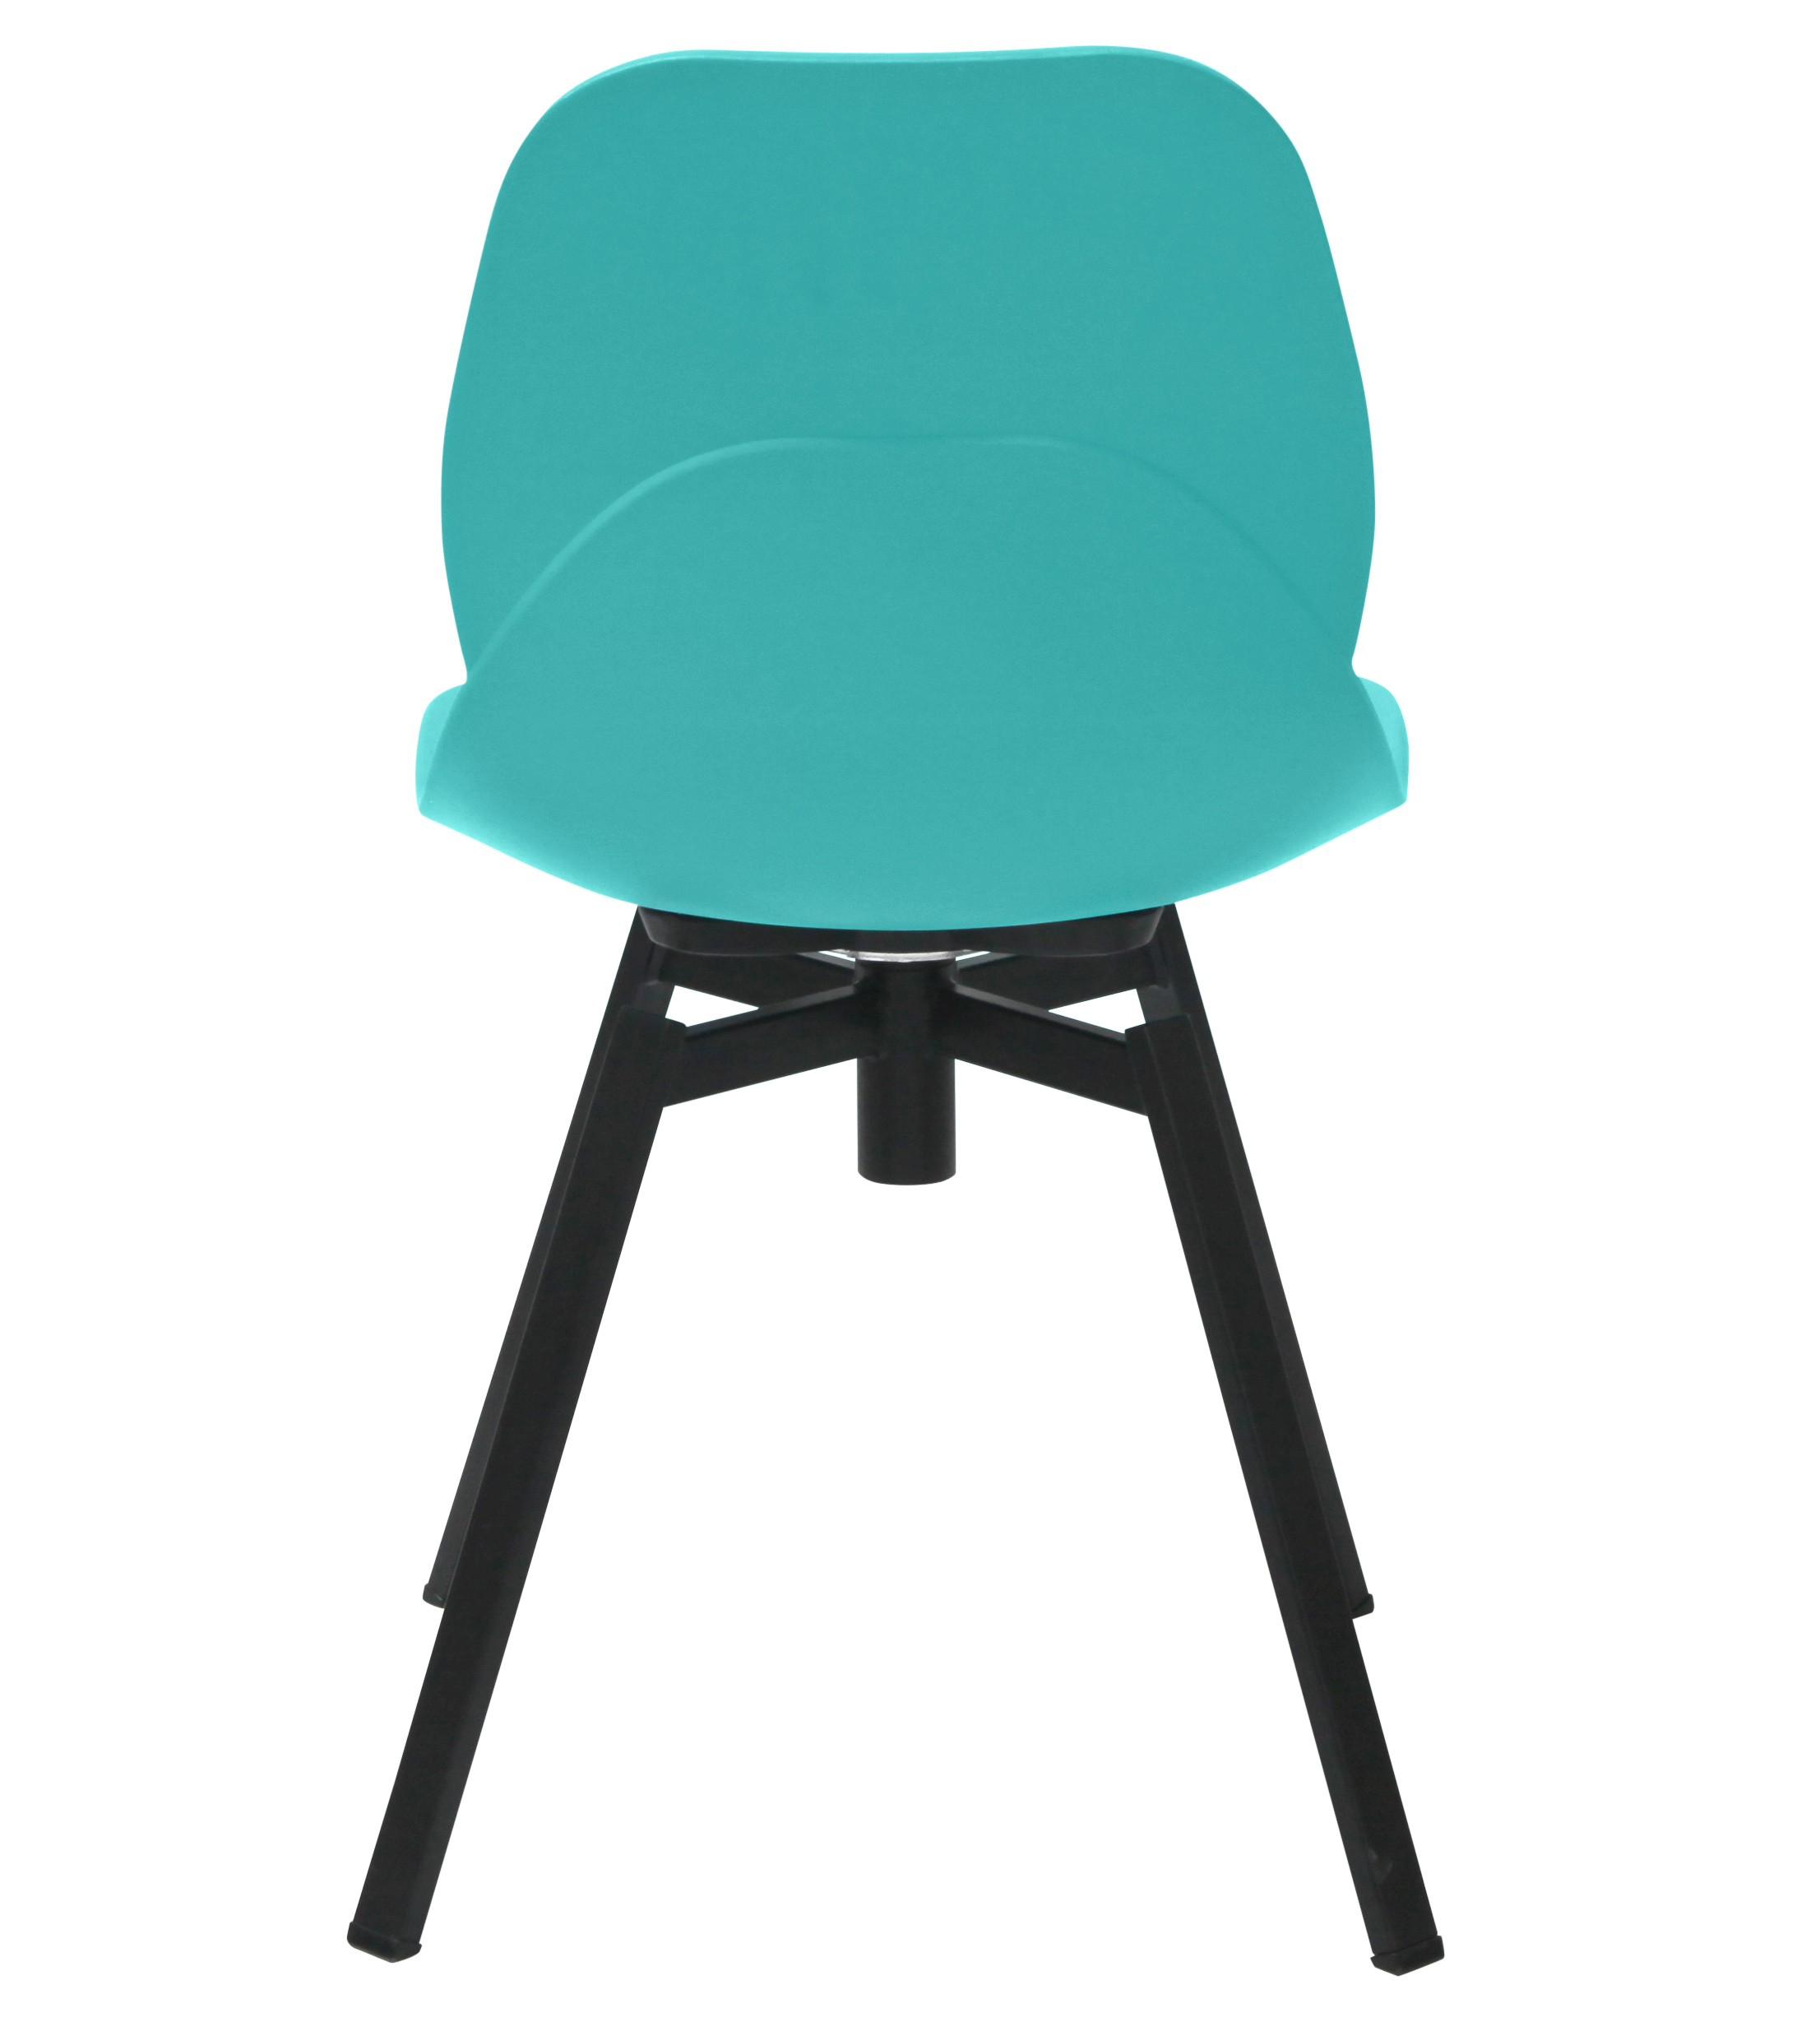 Turquoise Side Chair Joy Series Turquoise Dining Shell Side Chair Black Leg